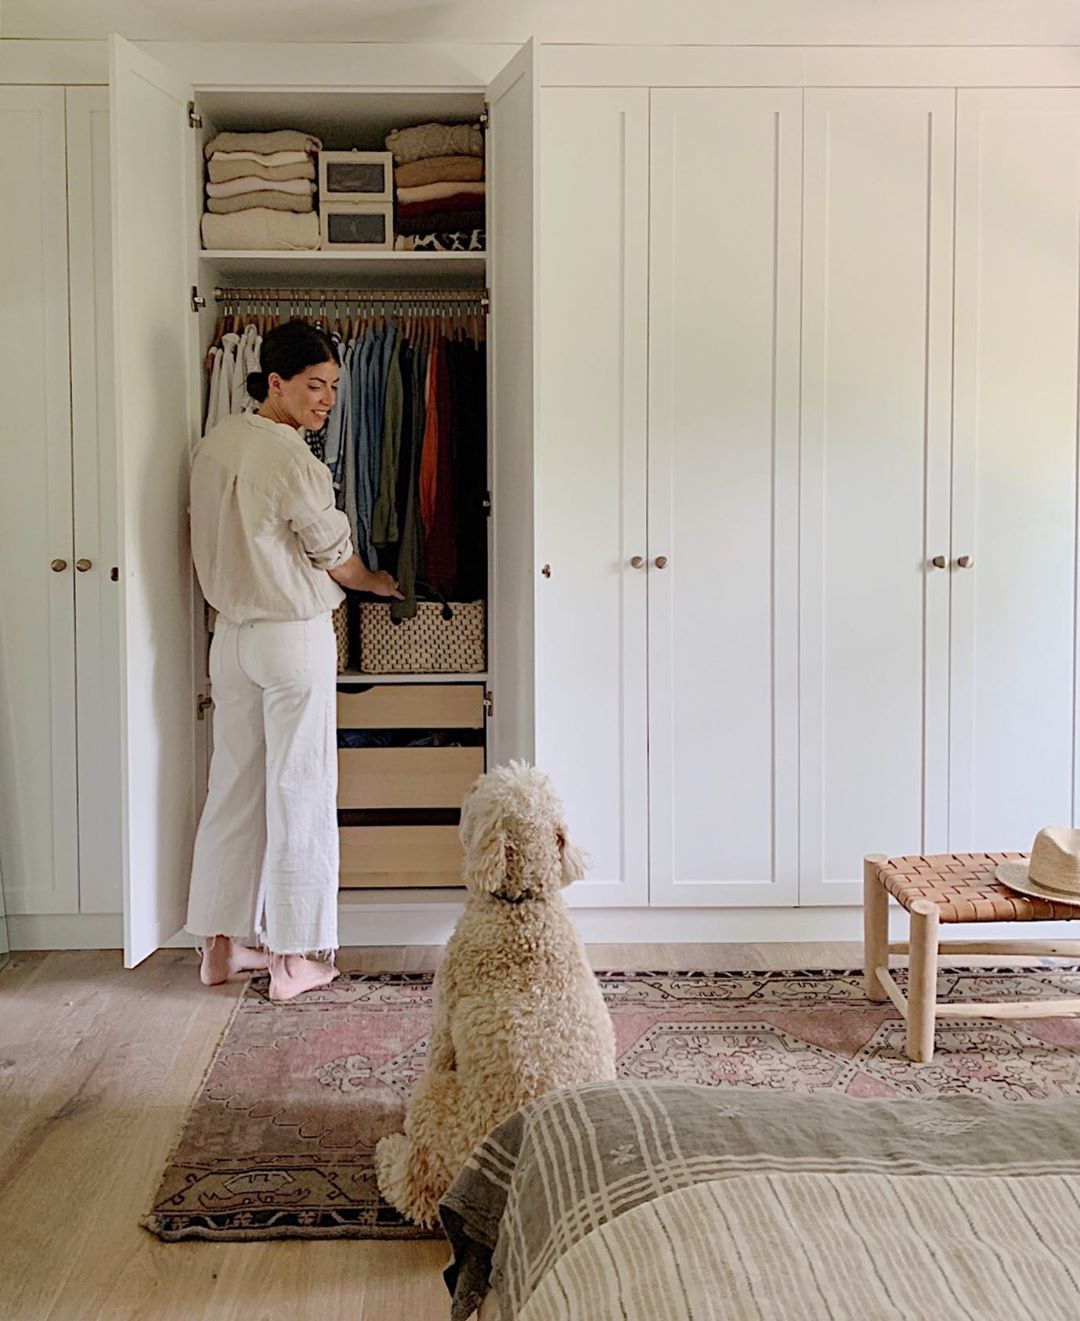 """Anissa Zajac on Instagram: """"OH. MY. GAWD. I'm so in love with these built in wardrobes! Can you fall in real, over the moon love, with a closet?! I most certainly did…"""""""